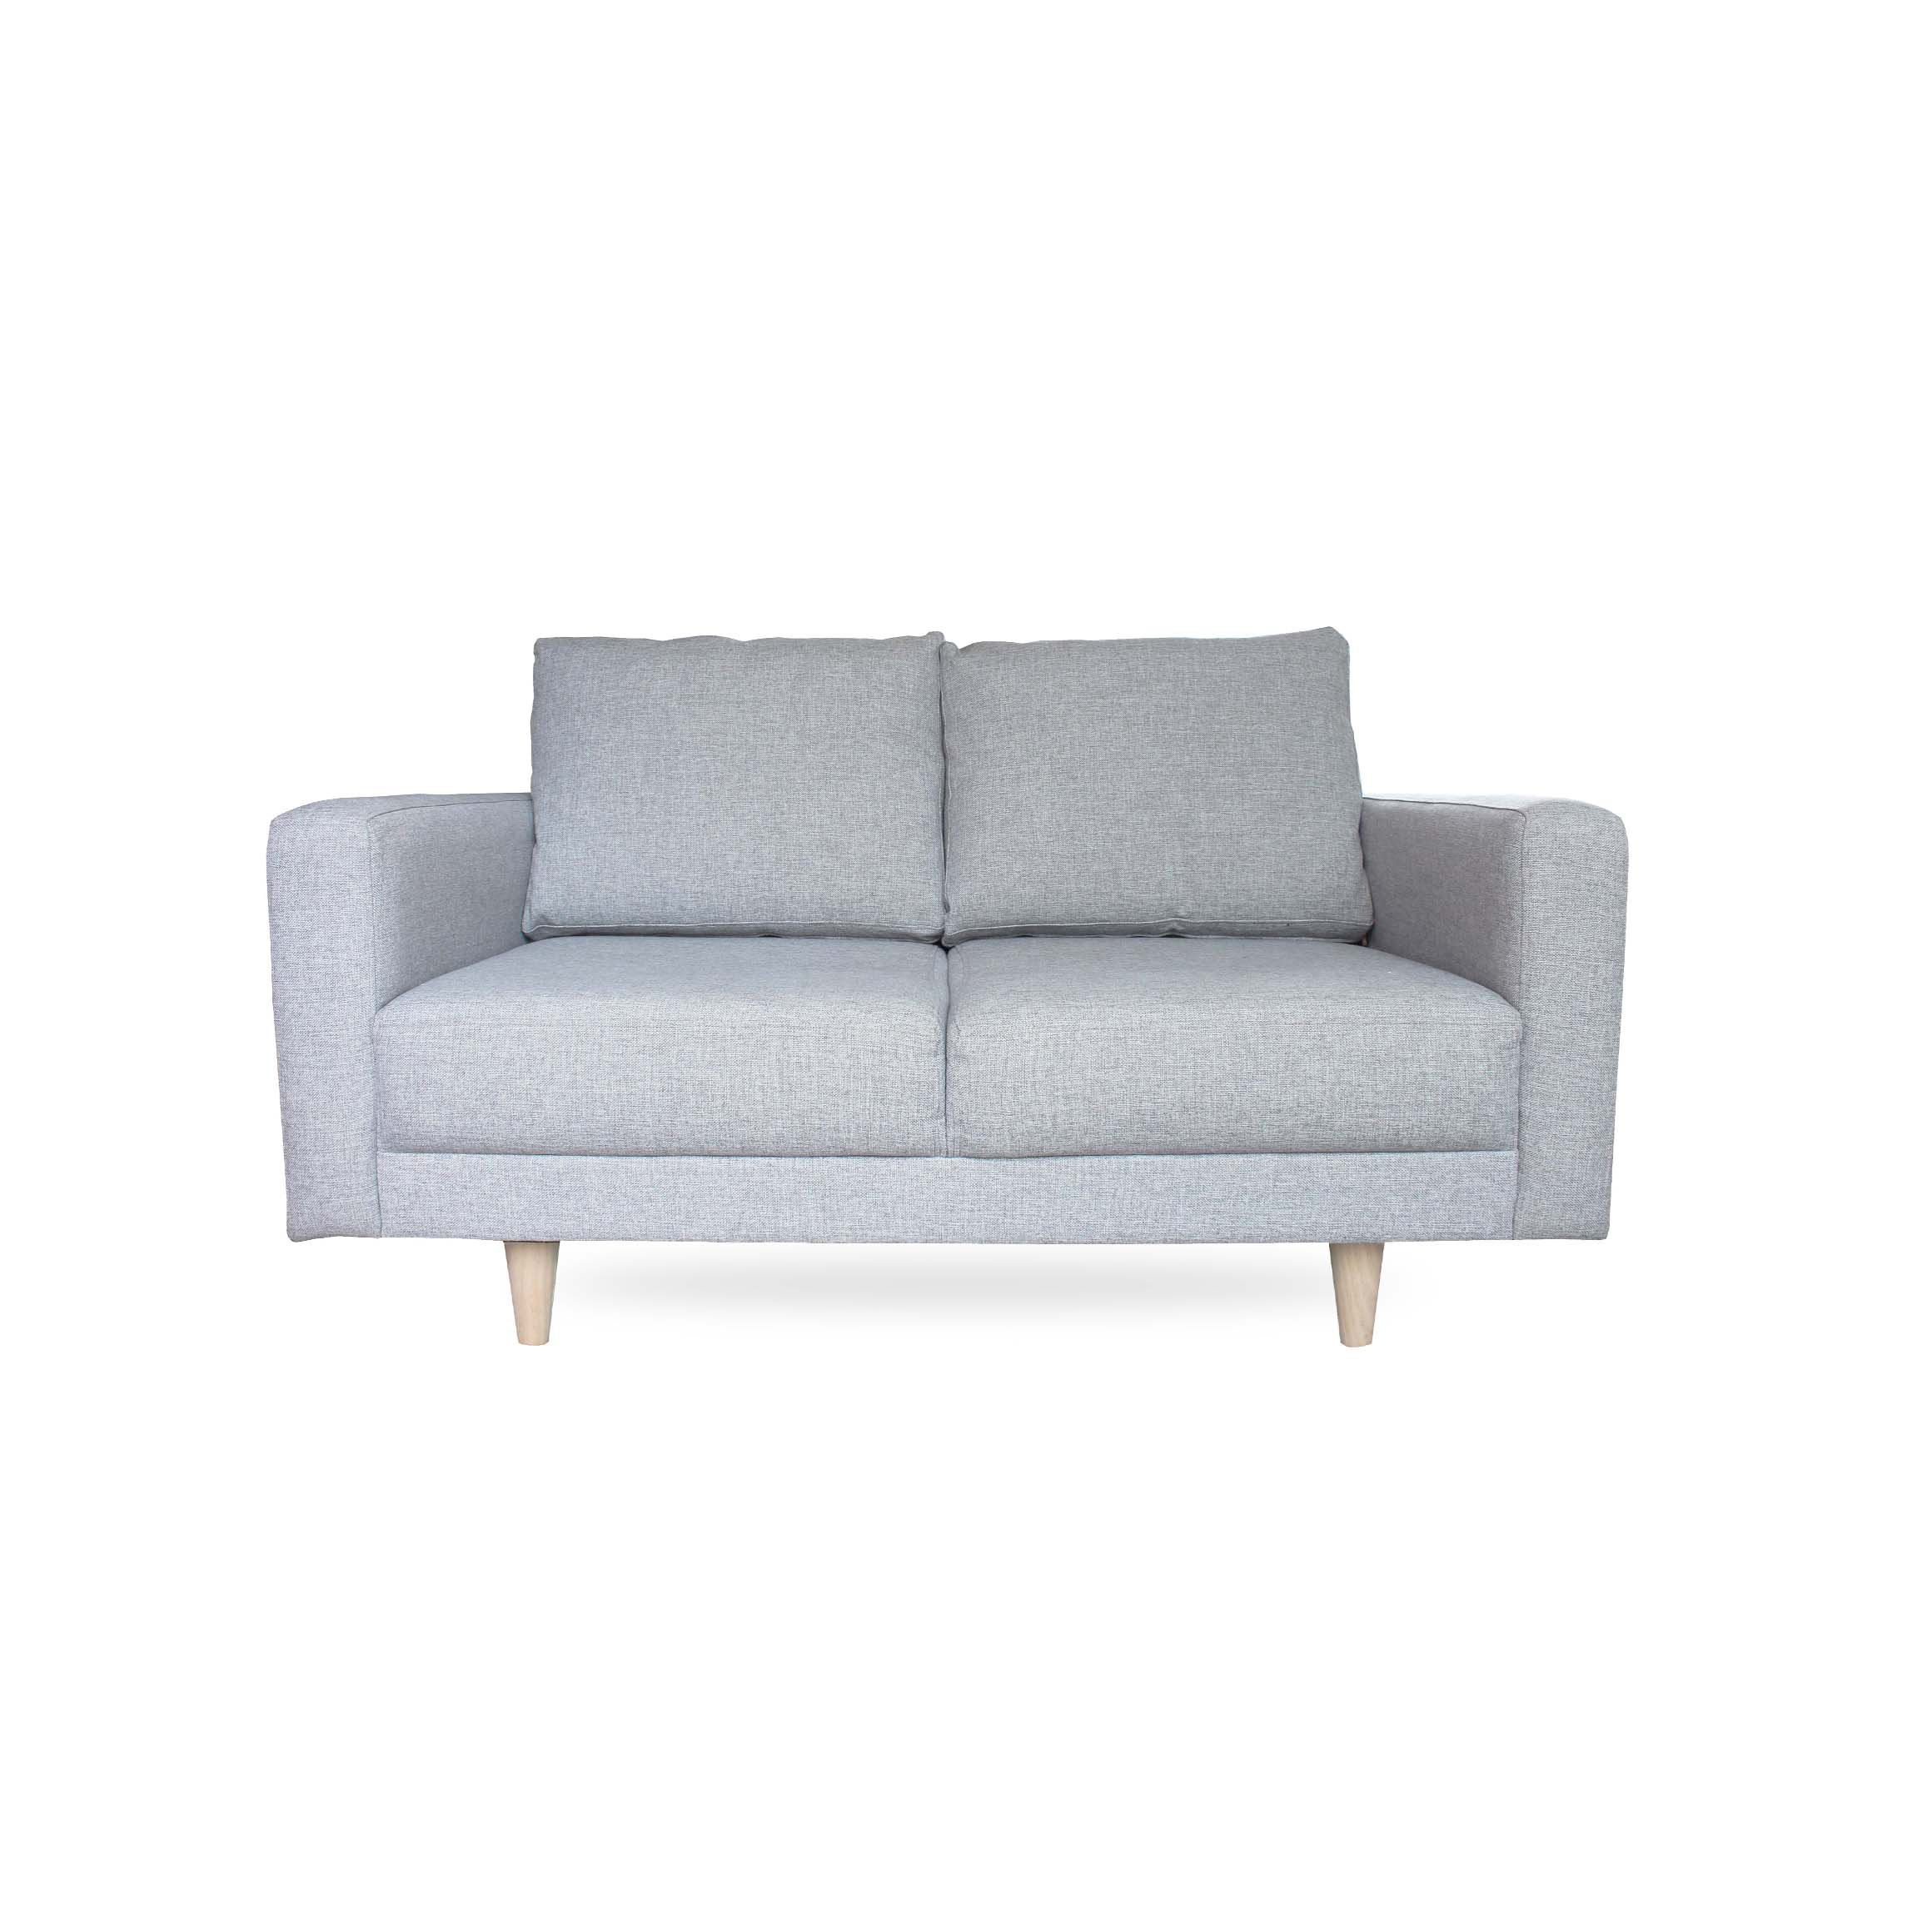 Plimmerton 2 Seater Sofa With Images 2 Seater Sofa Sofa Seater